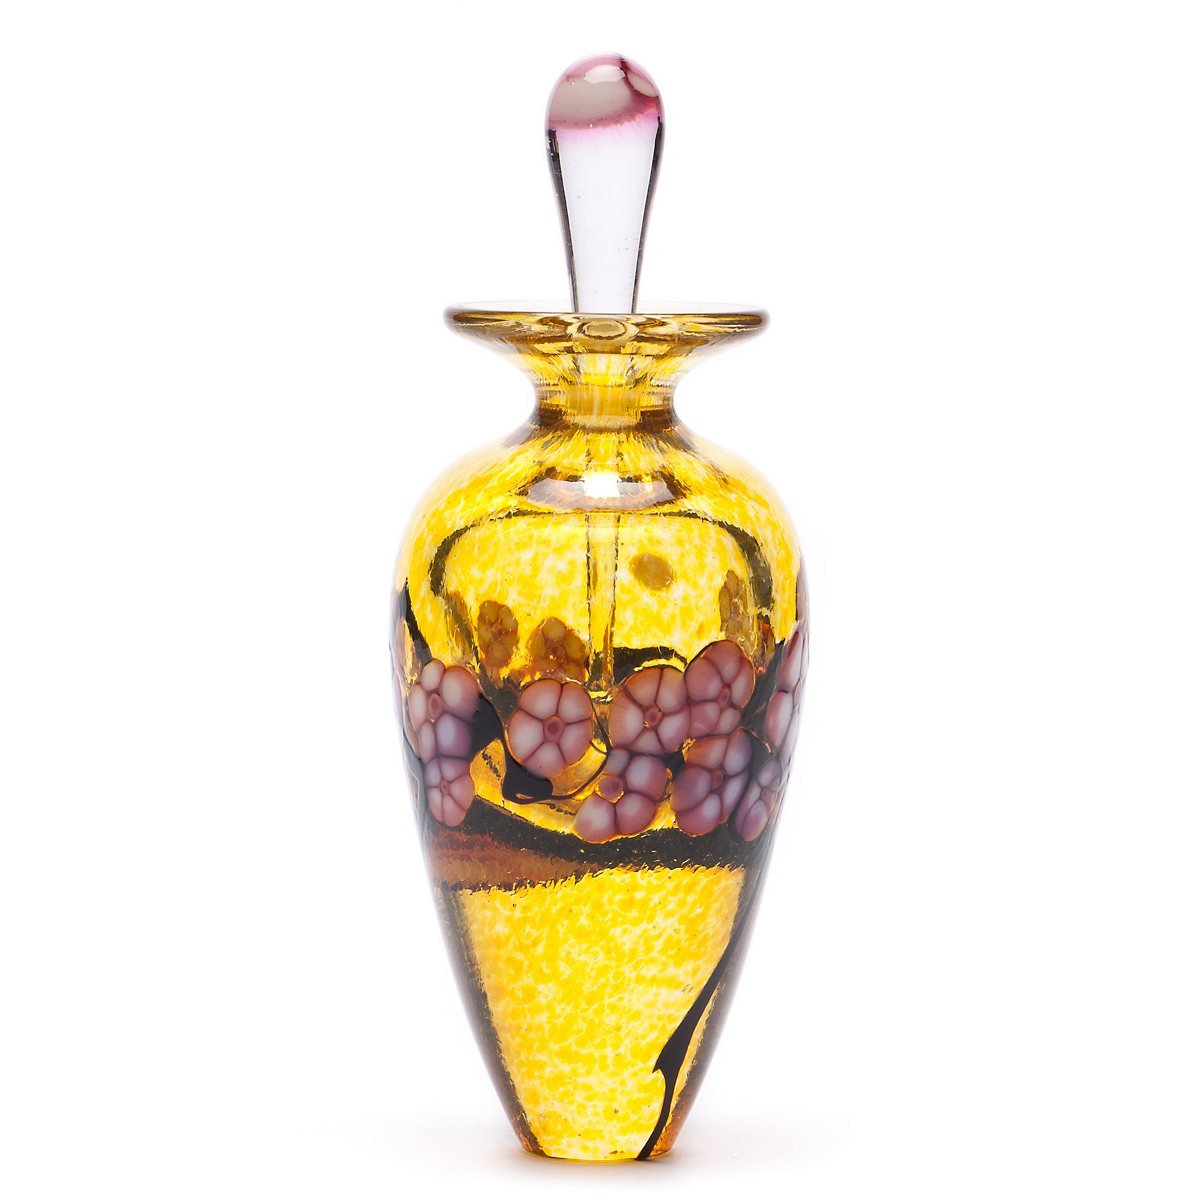 Robert Held Cherry Blossom Perfume Bottle